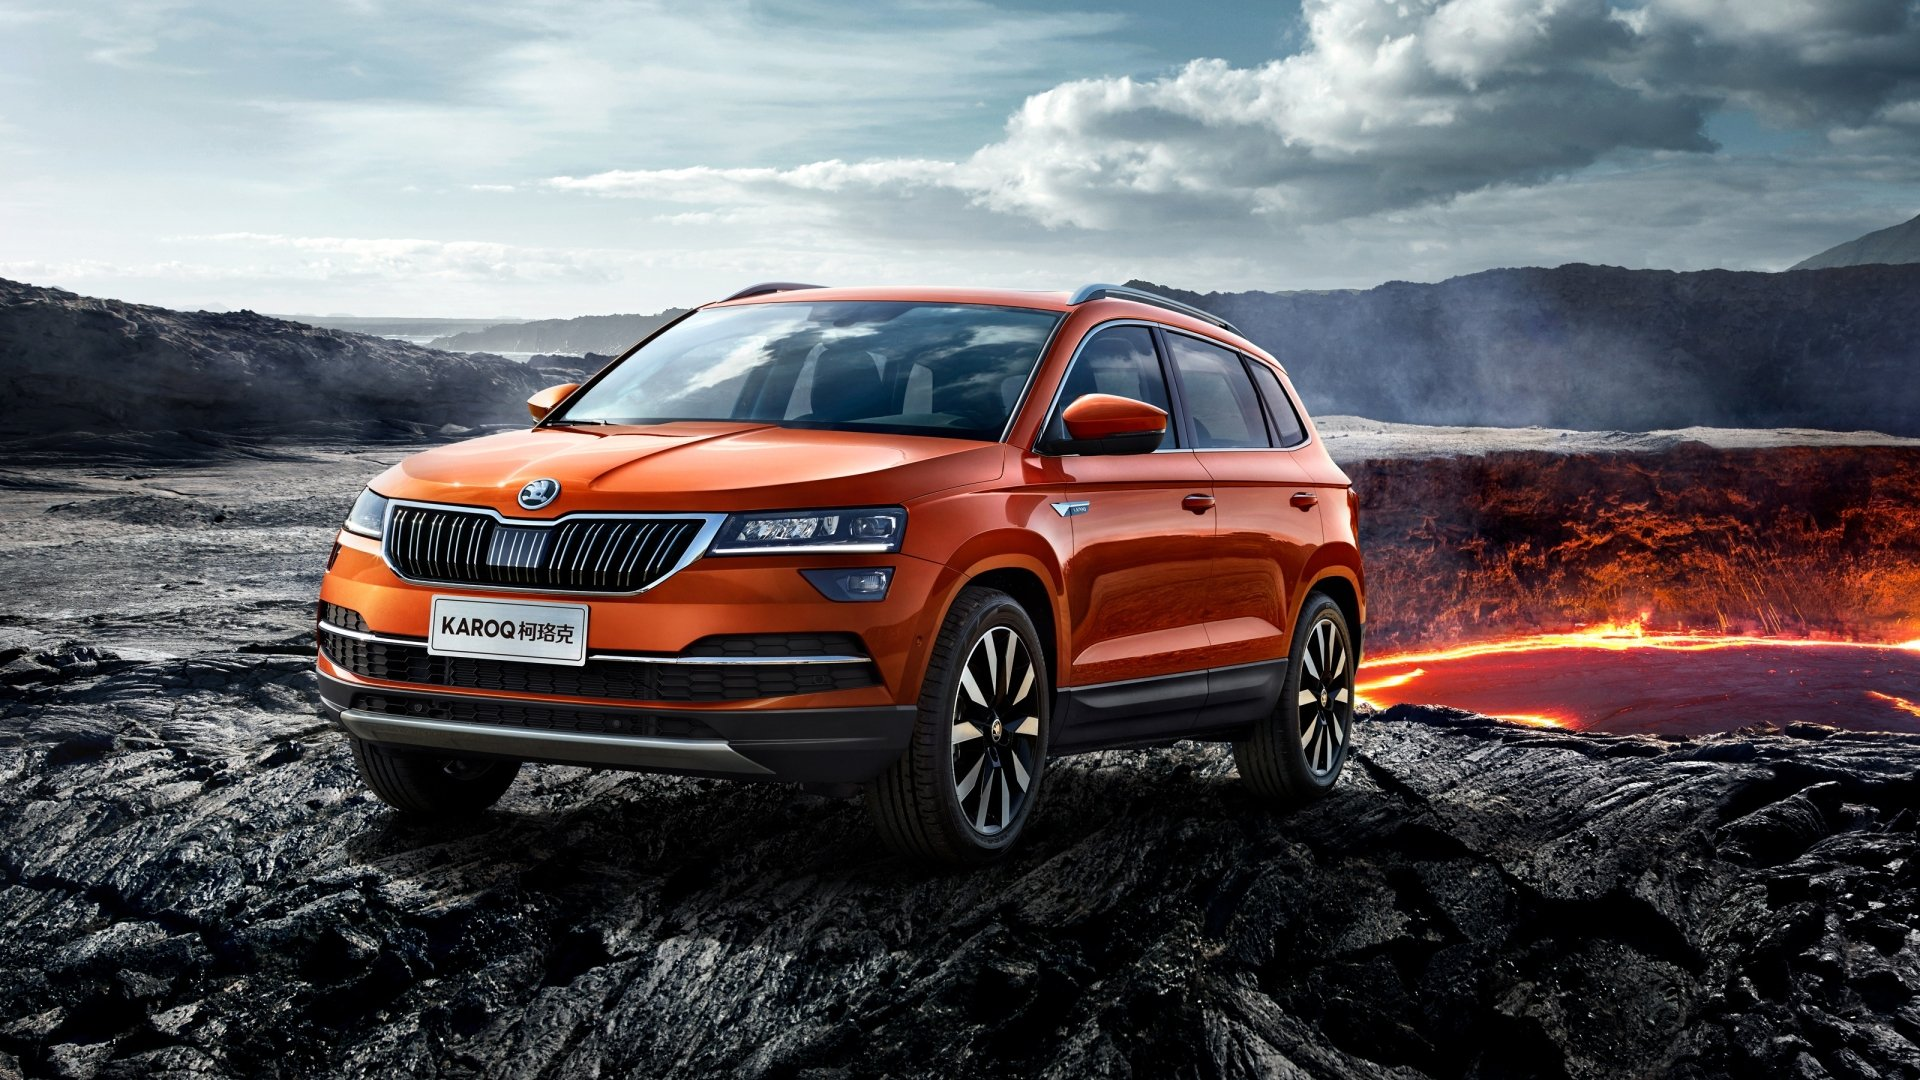 39 Skoda Karoq Hd Wallpapers Background Images Wallpaper Abyss